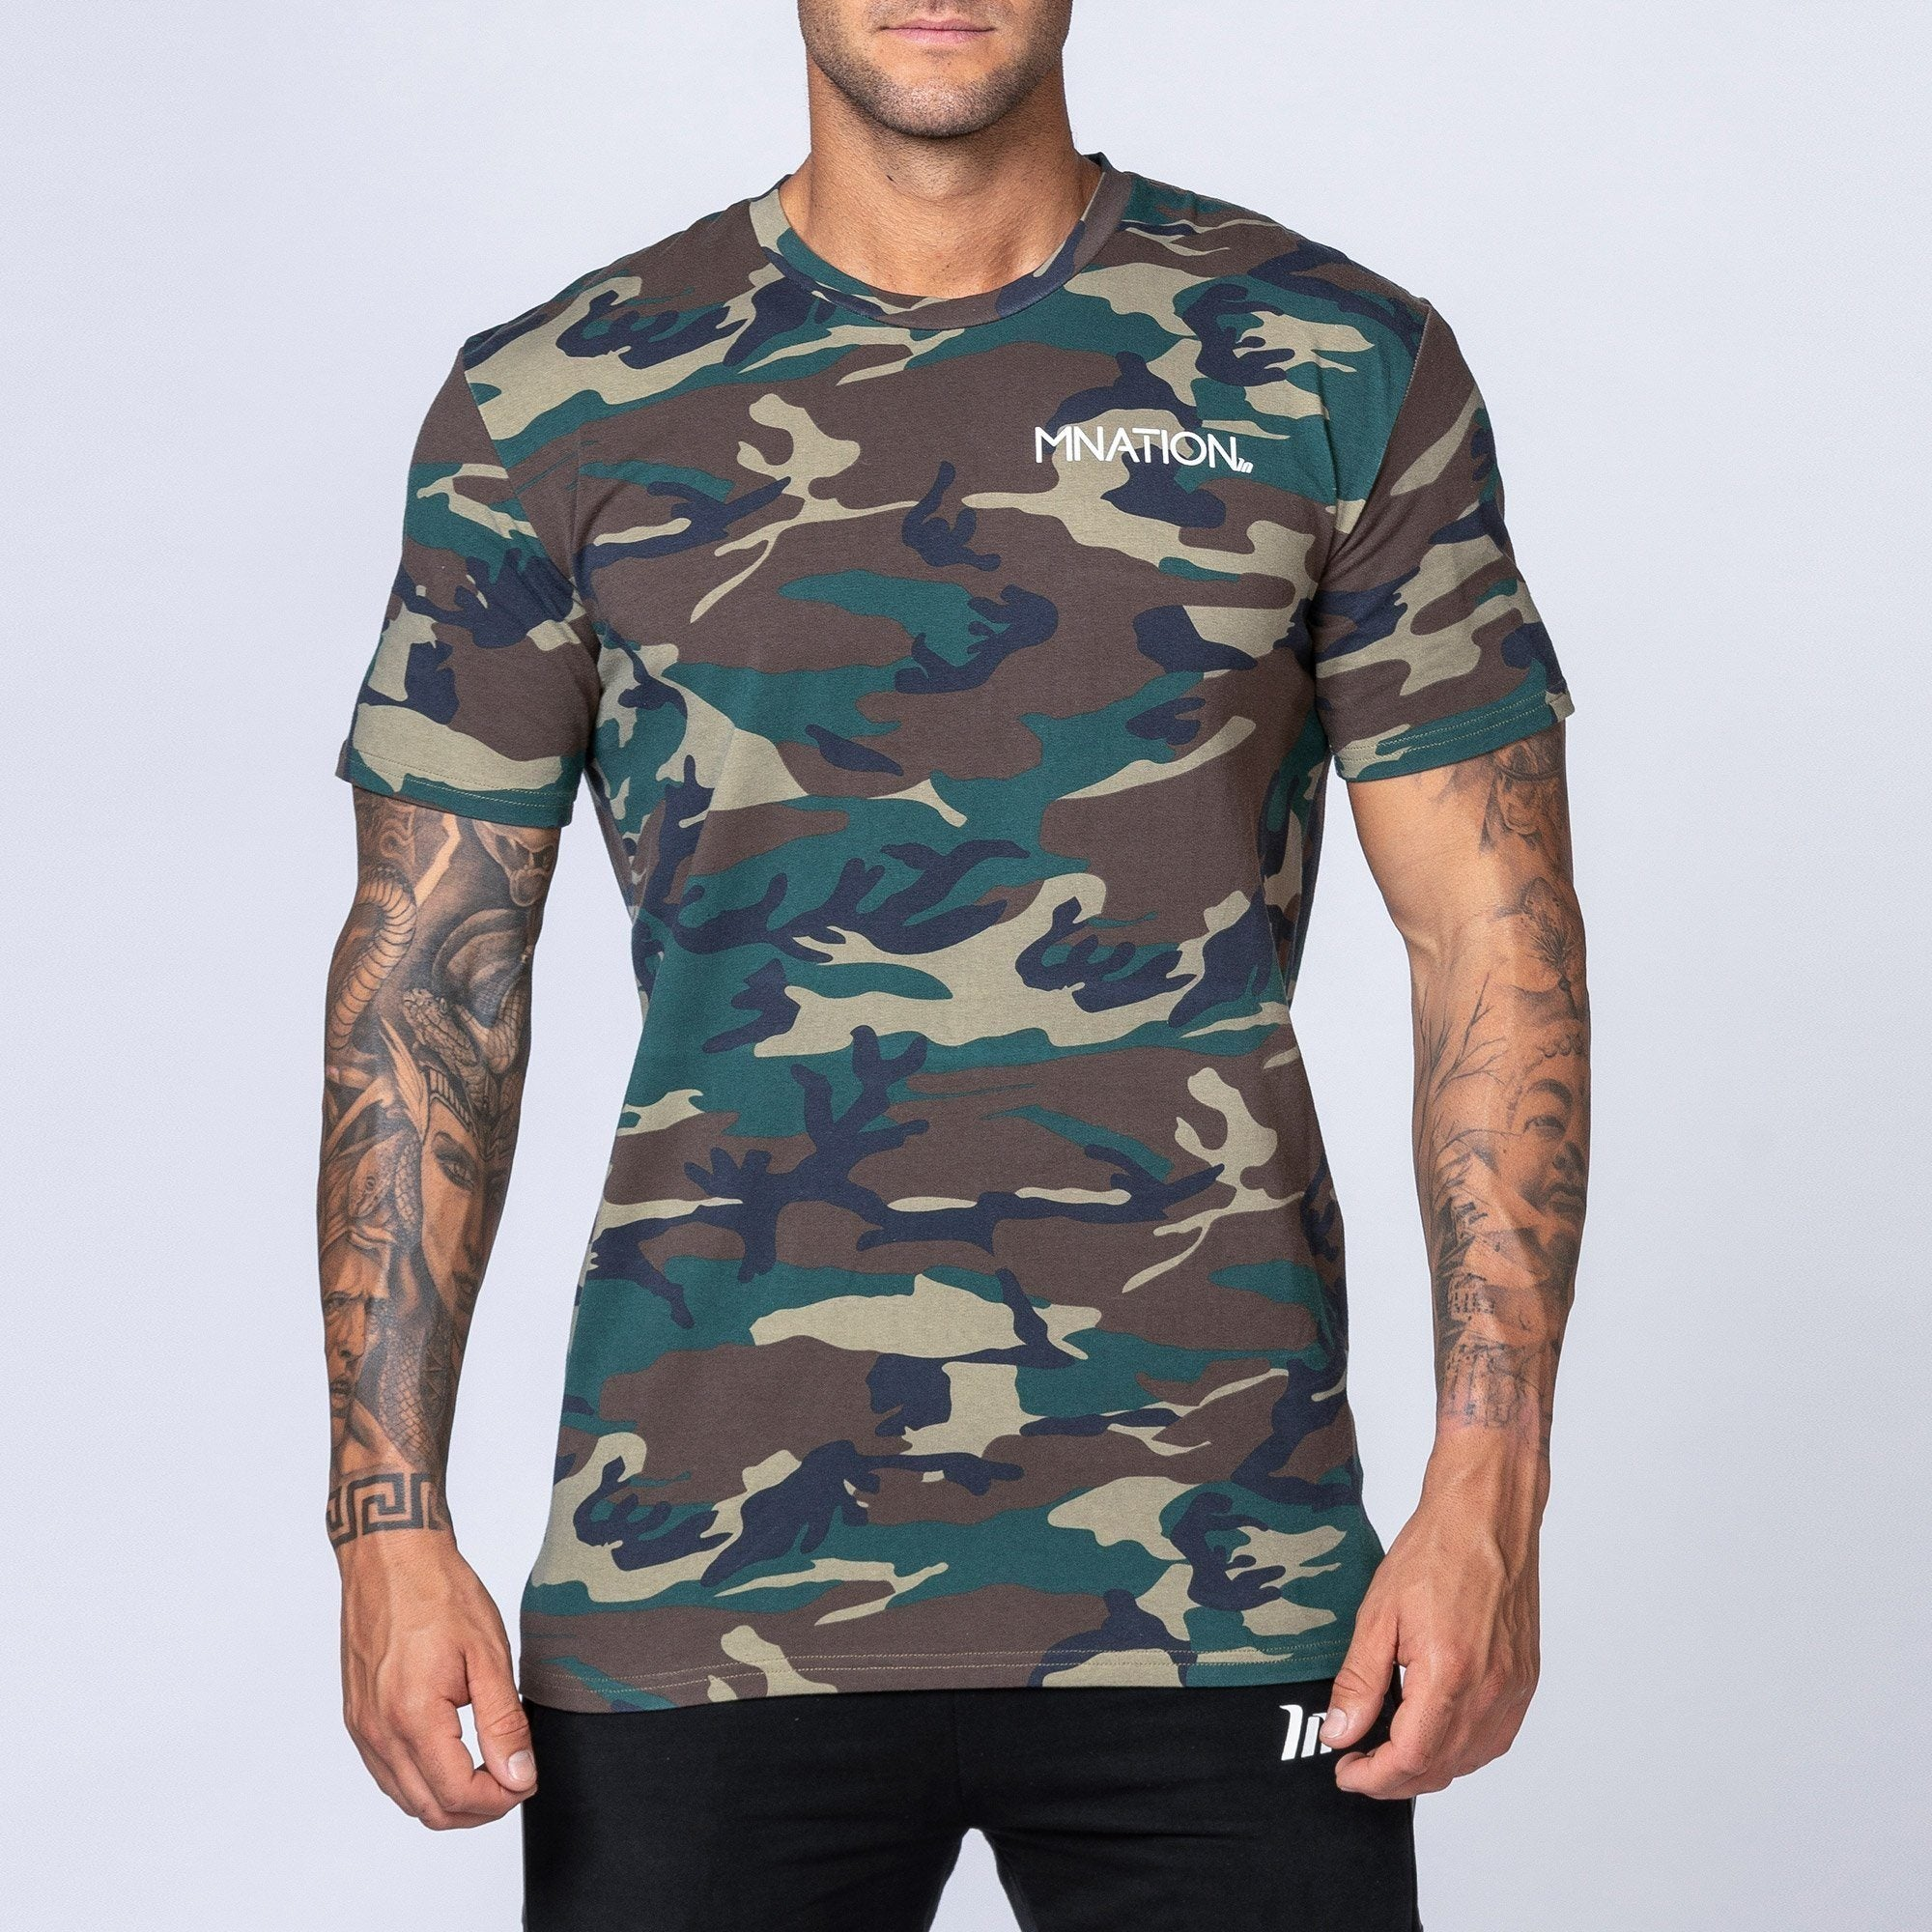 Muscle Nation MNation Tee - Camo